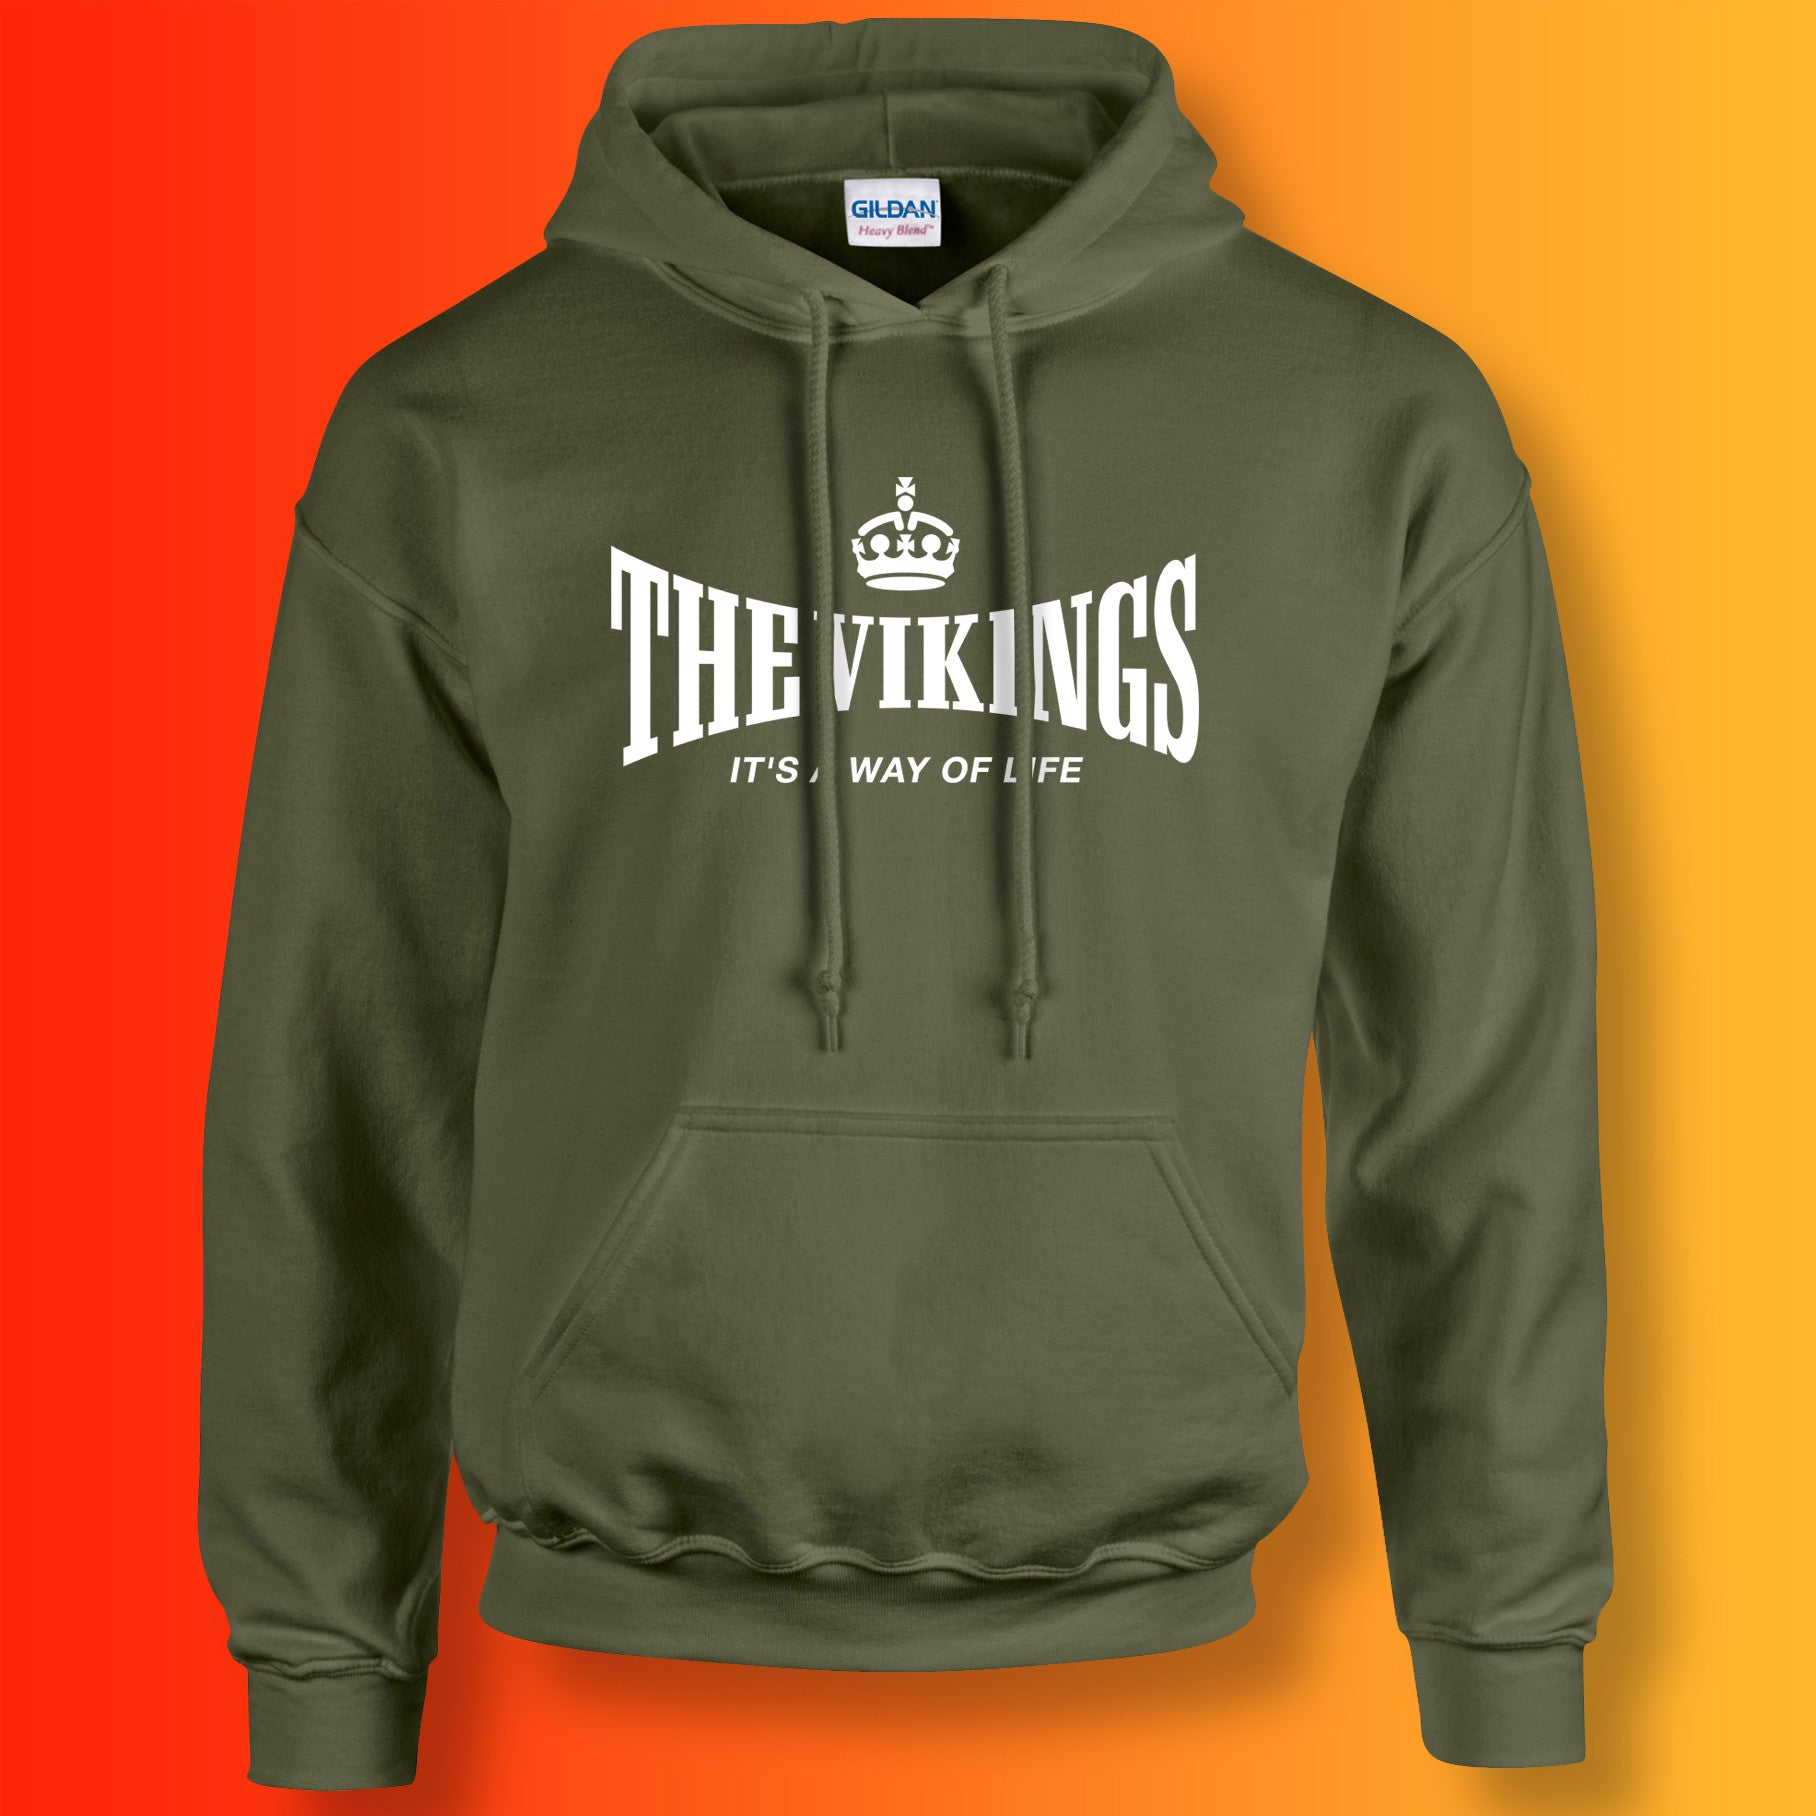 timeless design efd91 05132 The Vikings Hoodie with It's a Way of Life Design ...